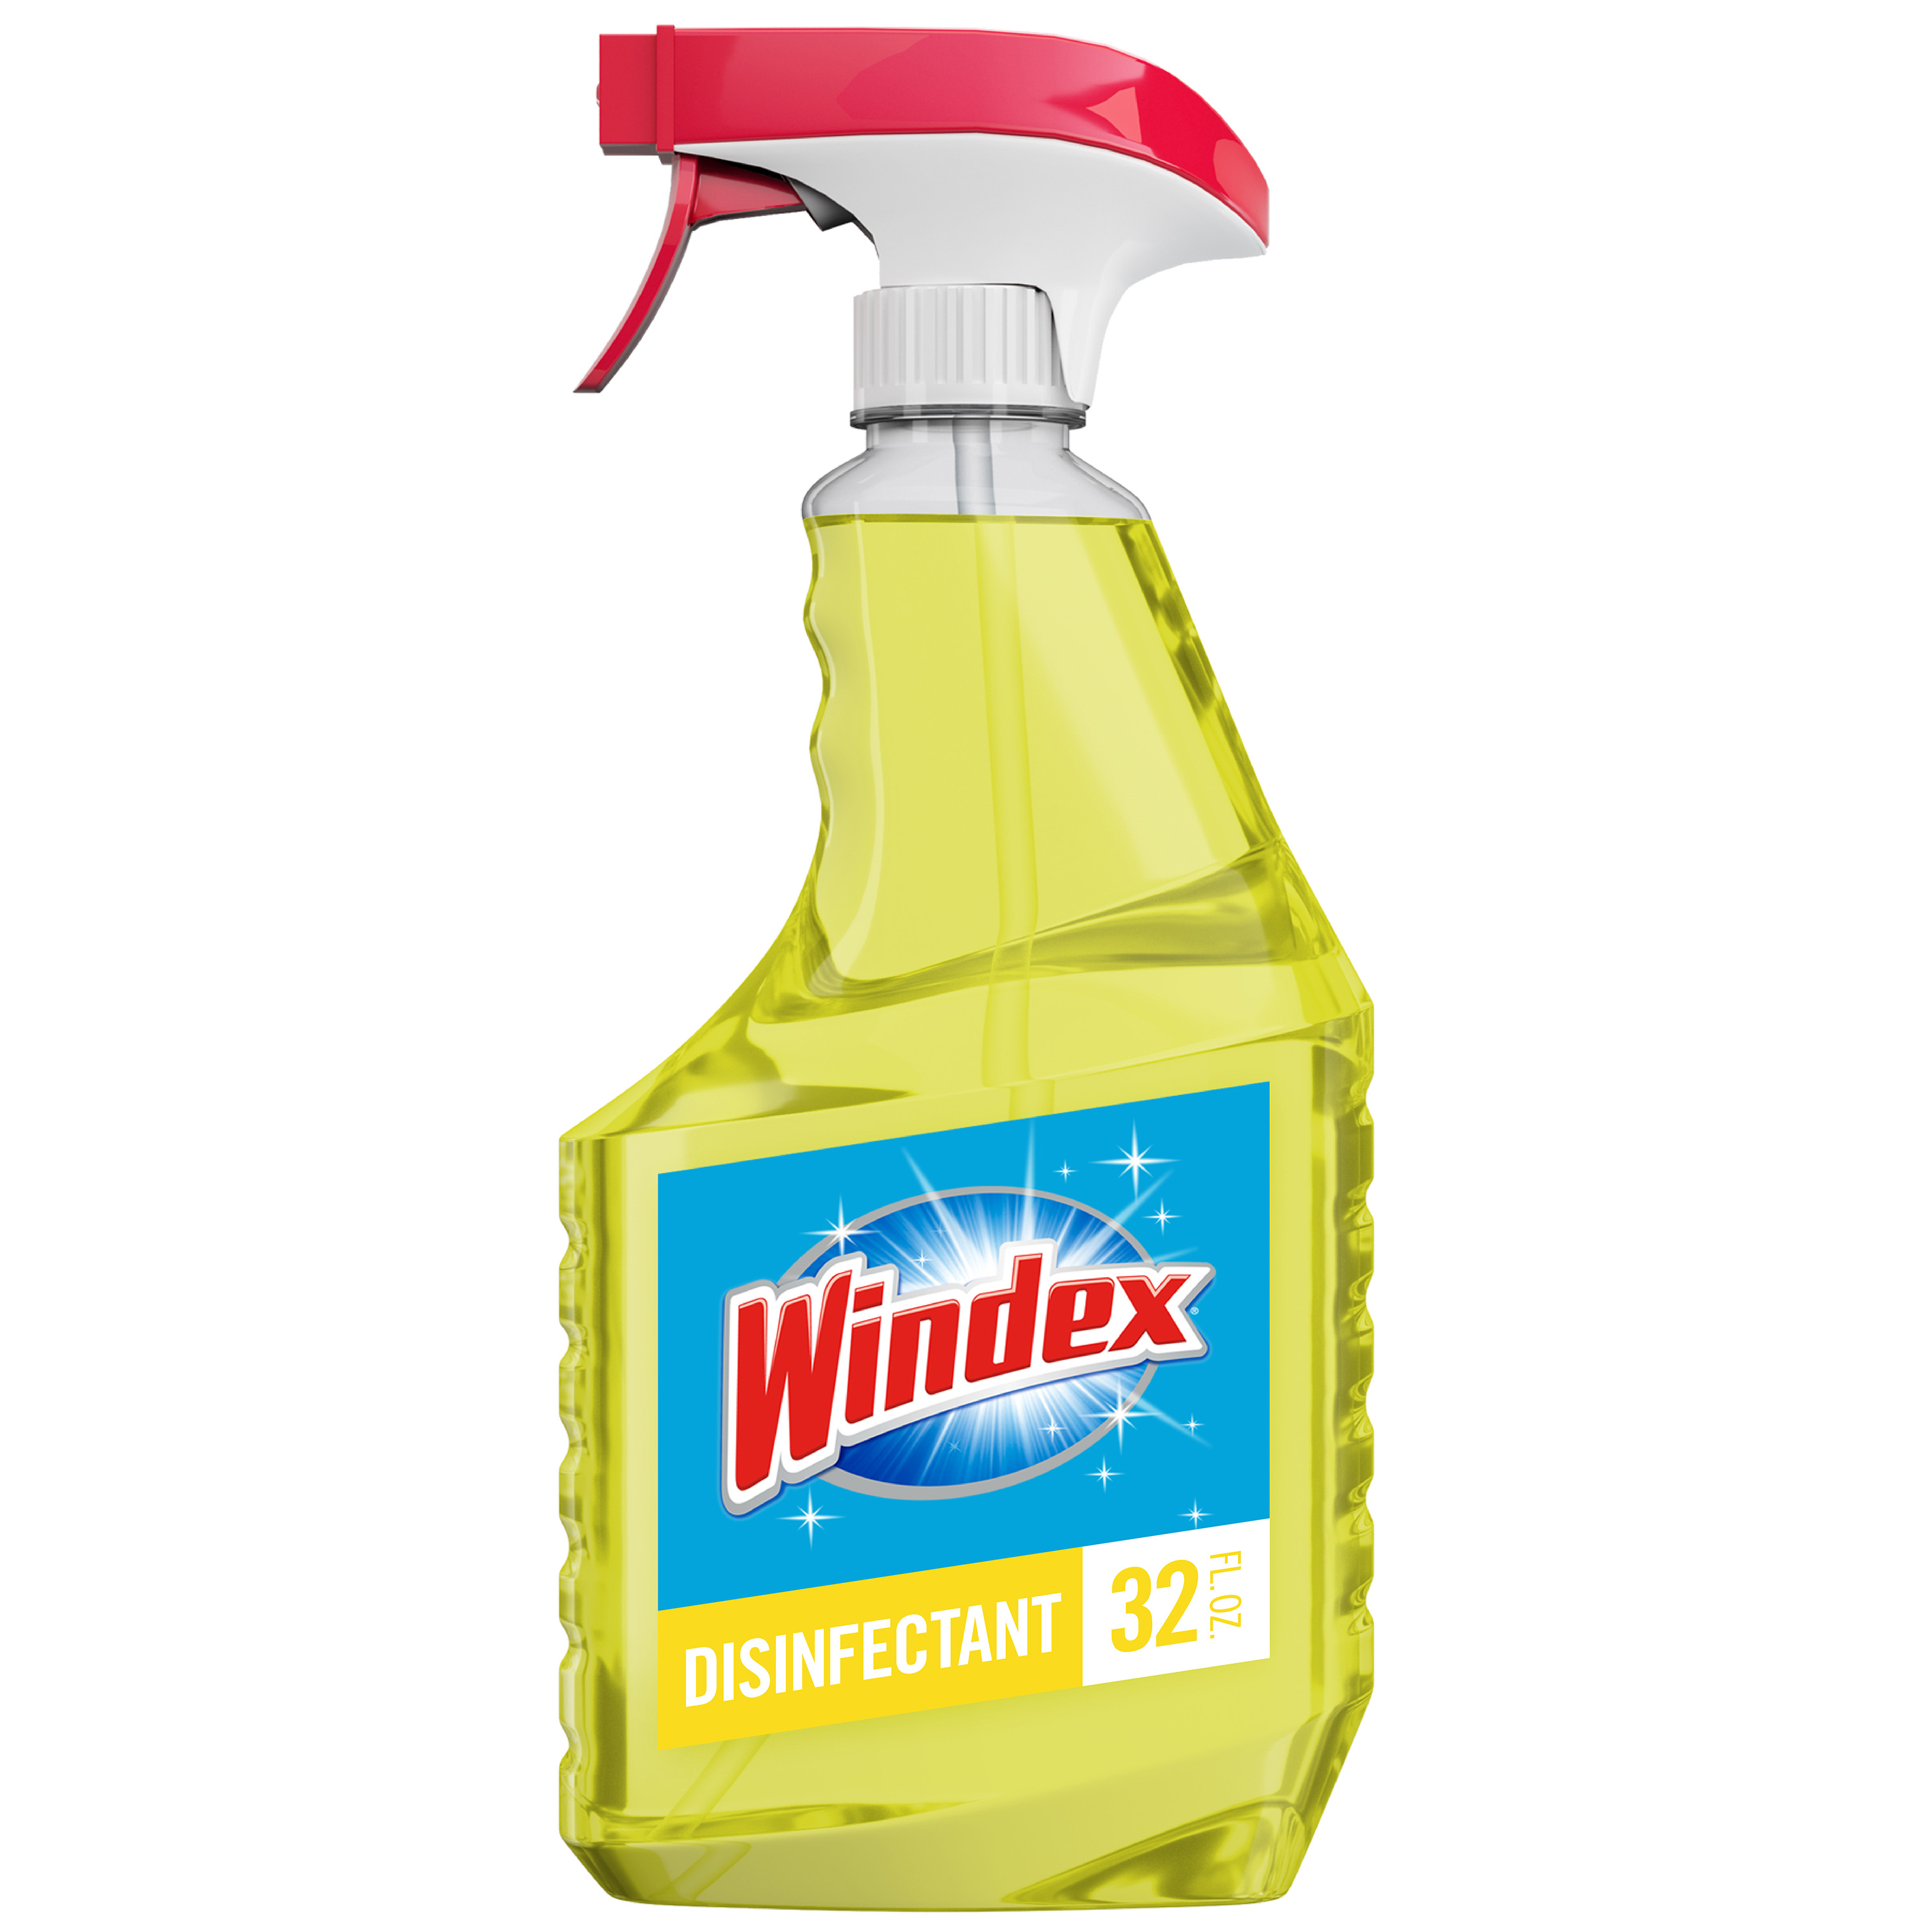 Windex Multi-Surface Disinfectant Cleaner Trigger Bottle, Citrus, 32 fl oz